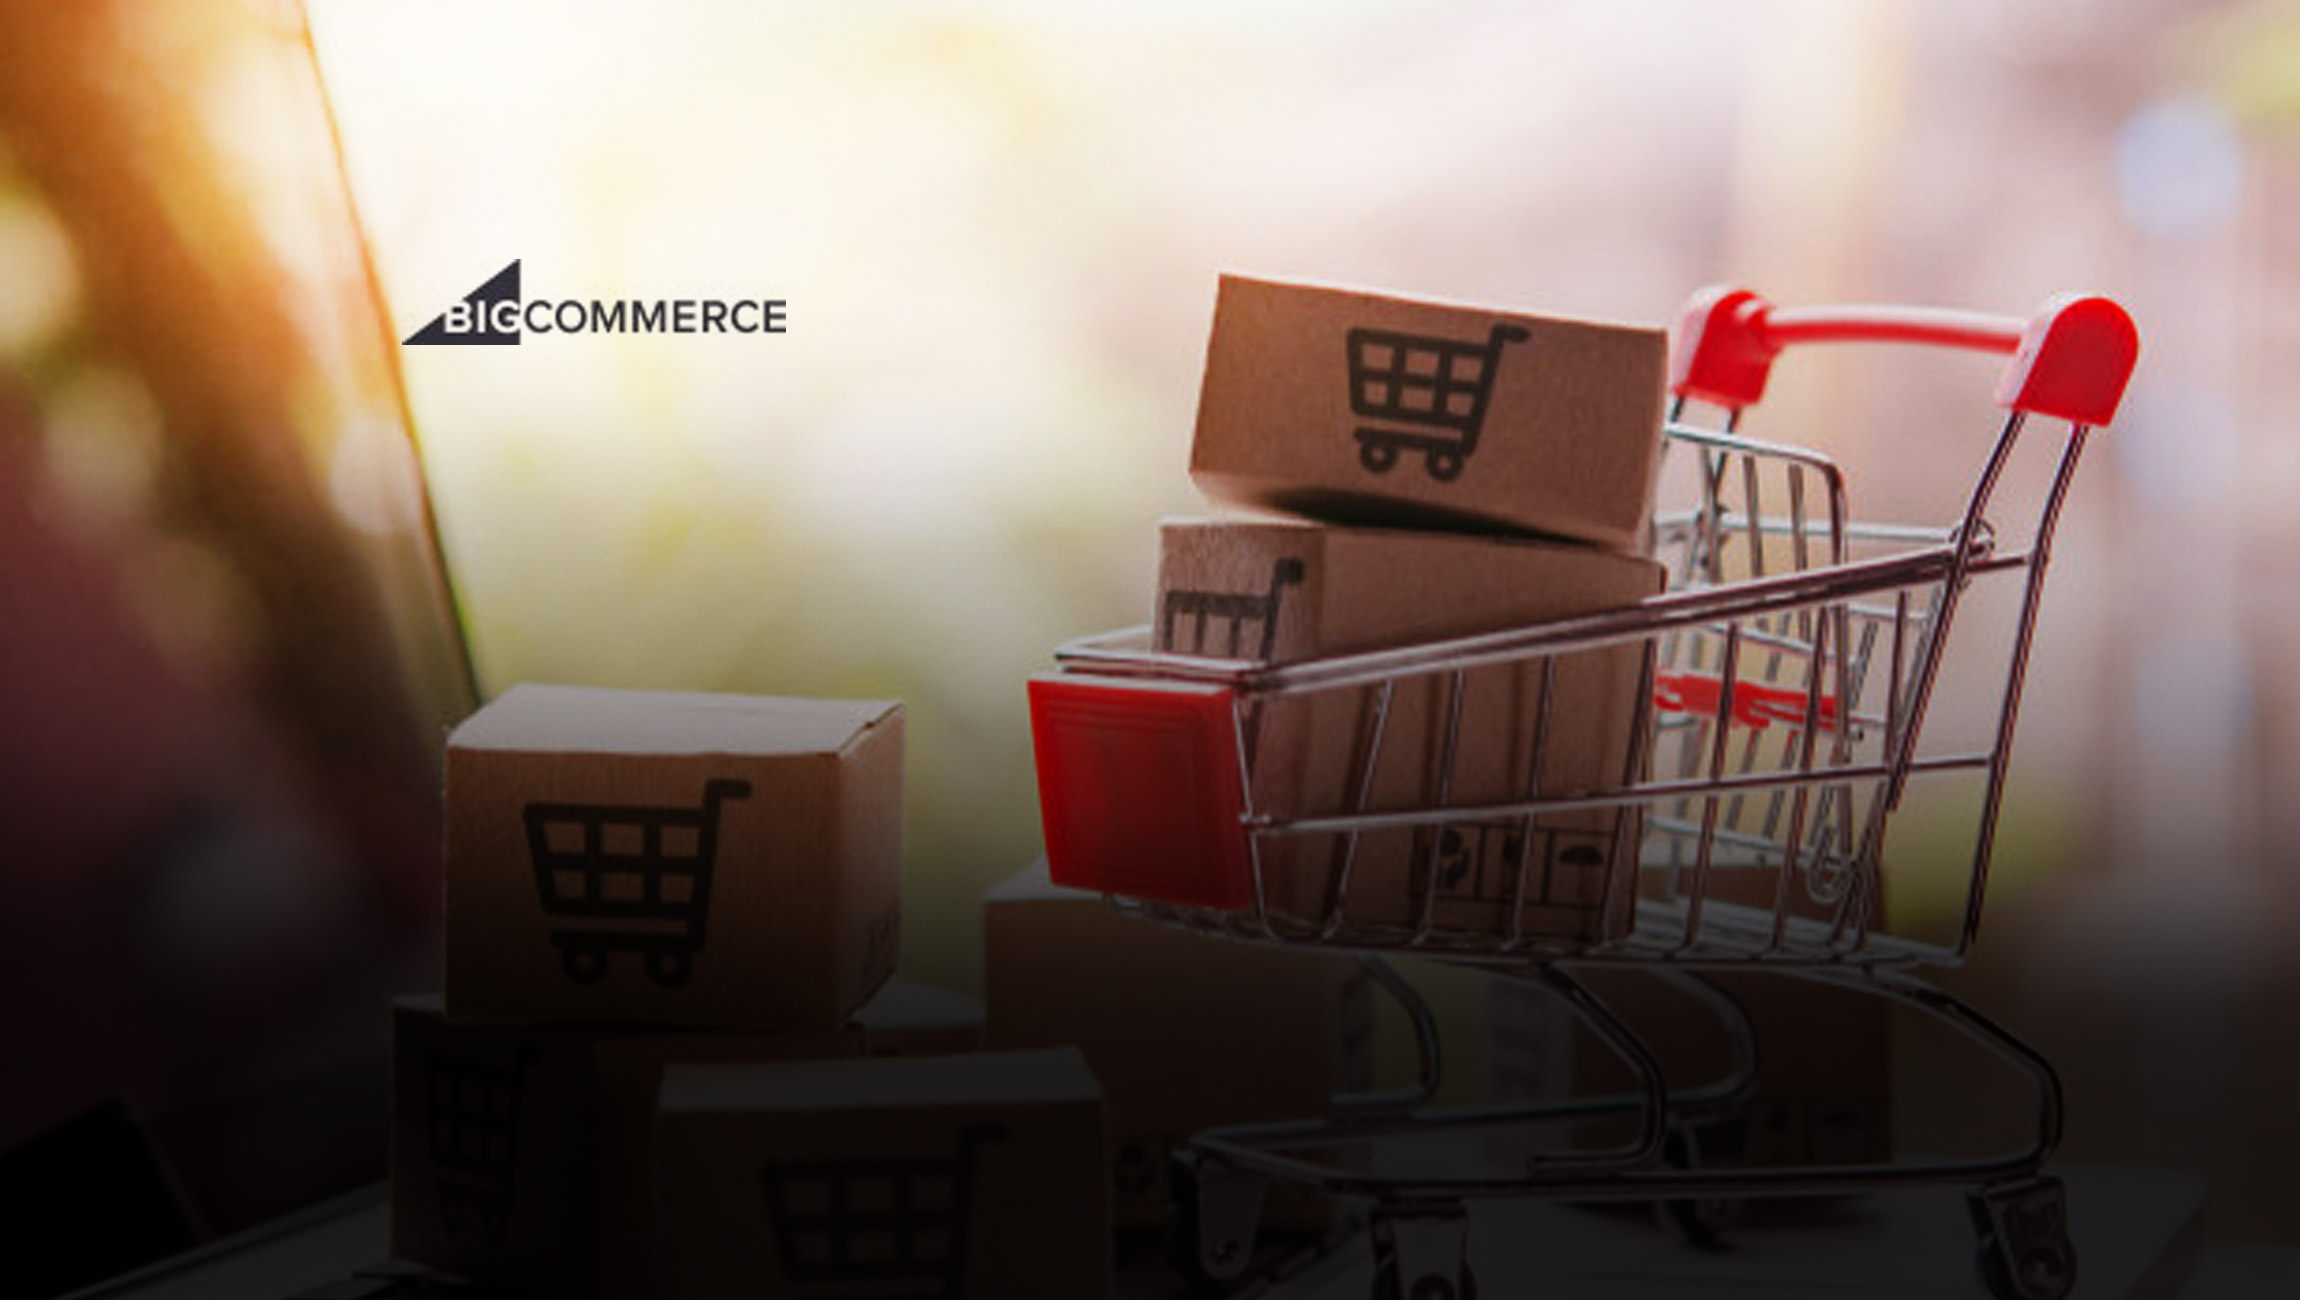 BigCommerce-Partners-with-EPAM-to-Deliver-Modern-Ecommerce-Solutions-to-Enterprise-Customers